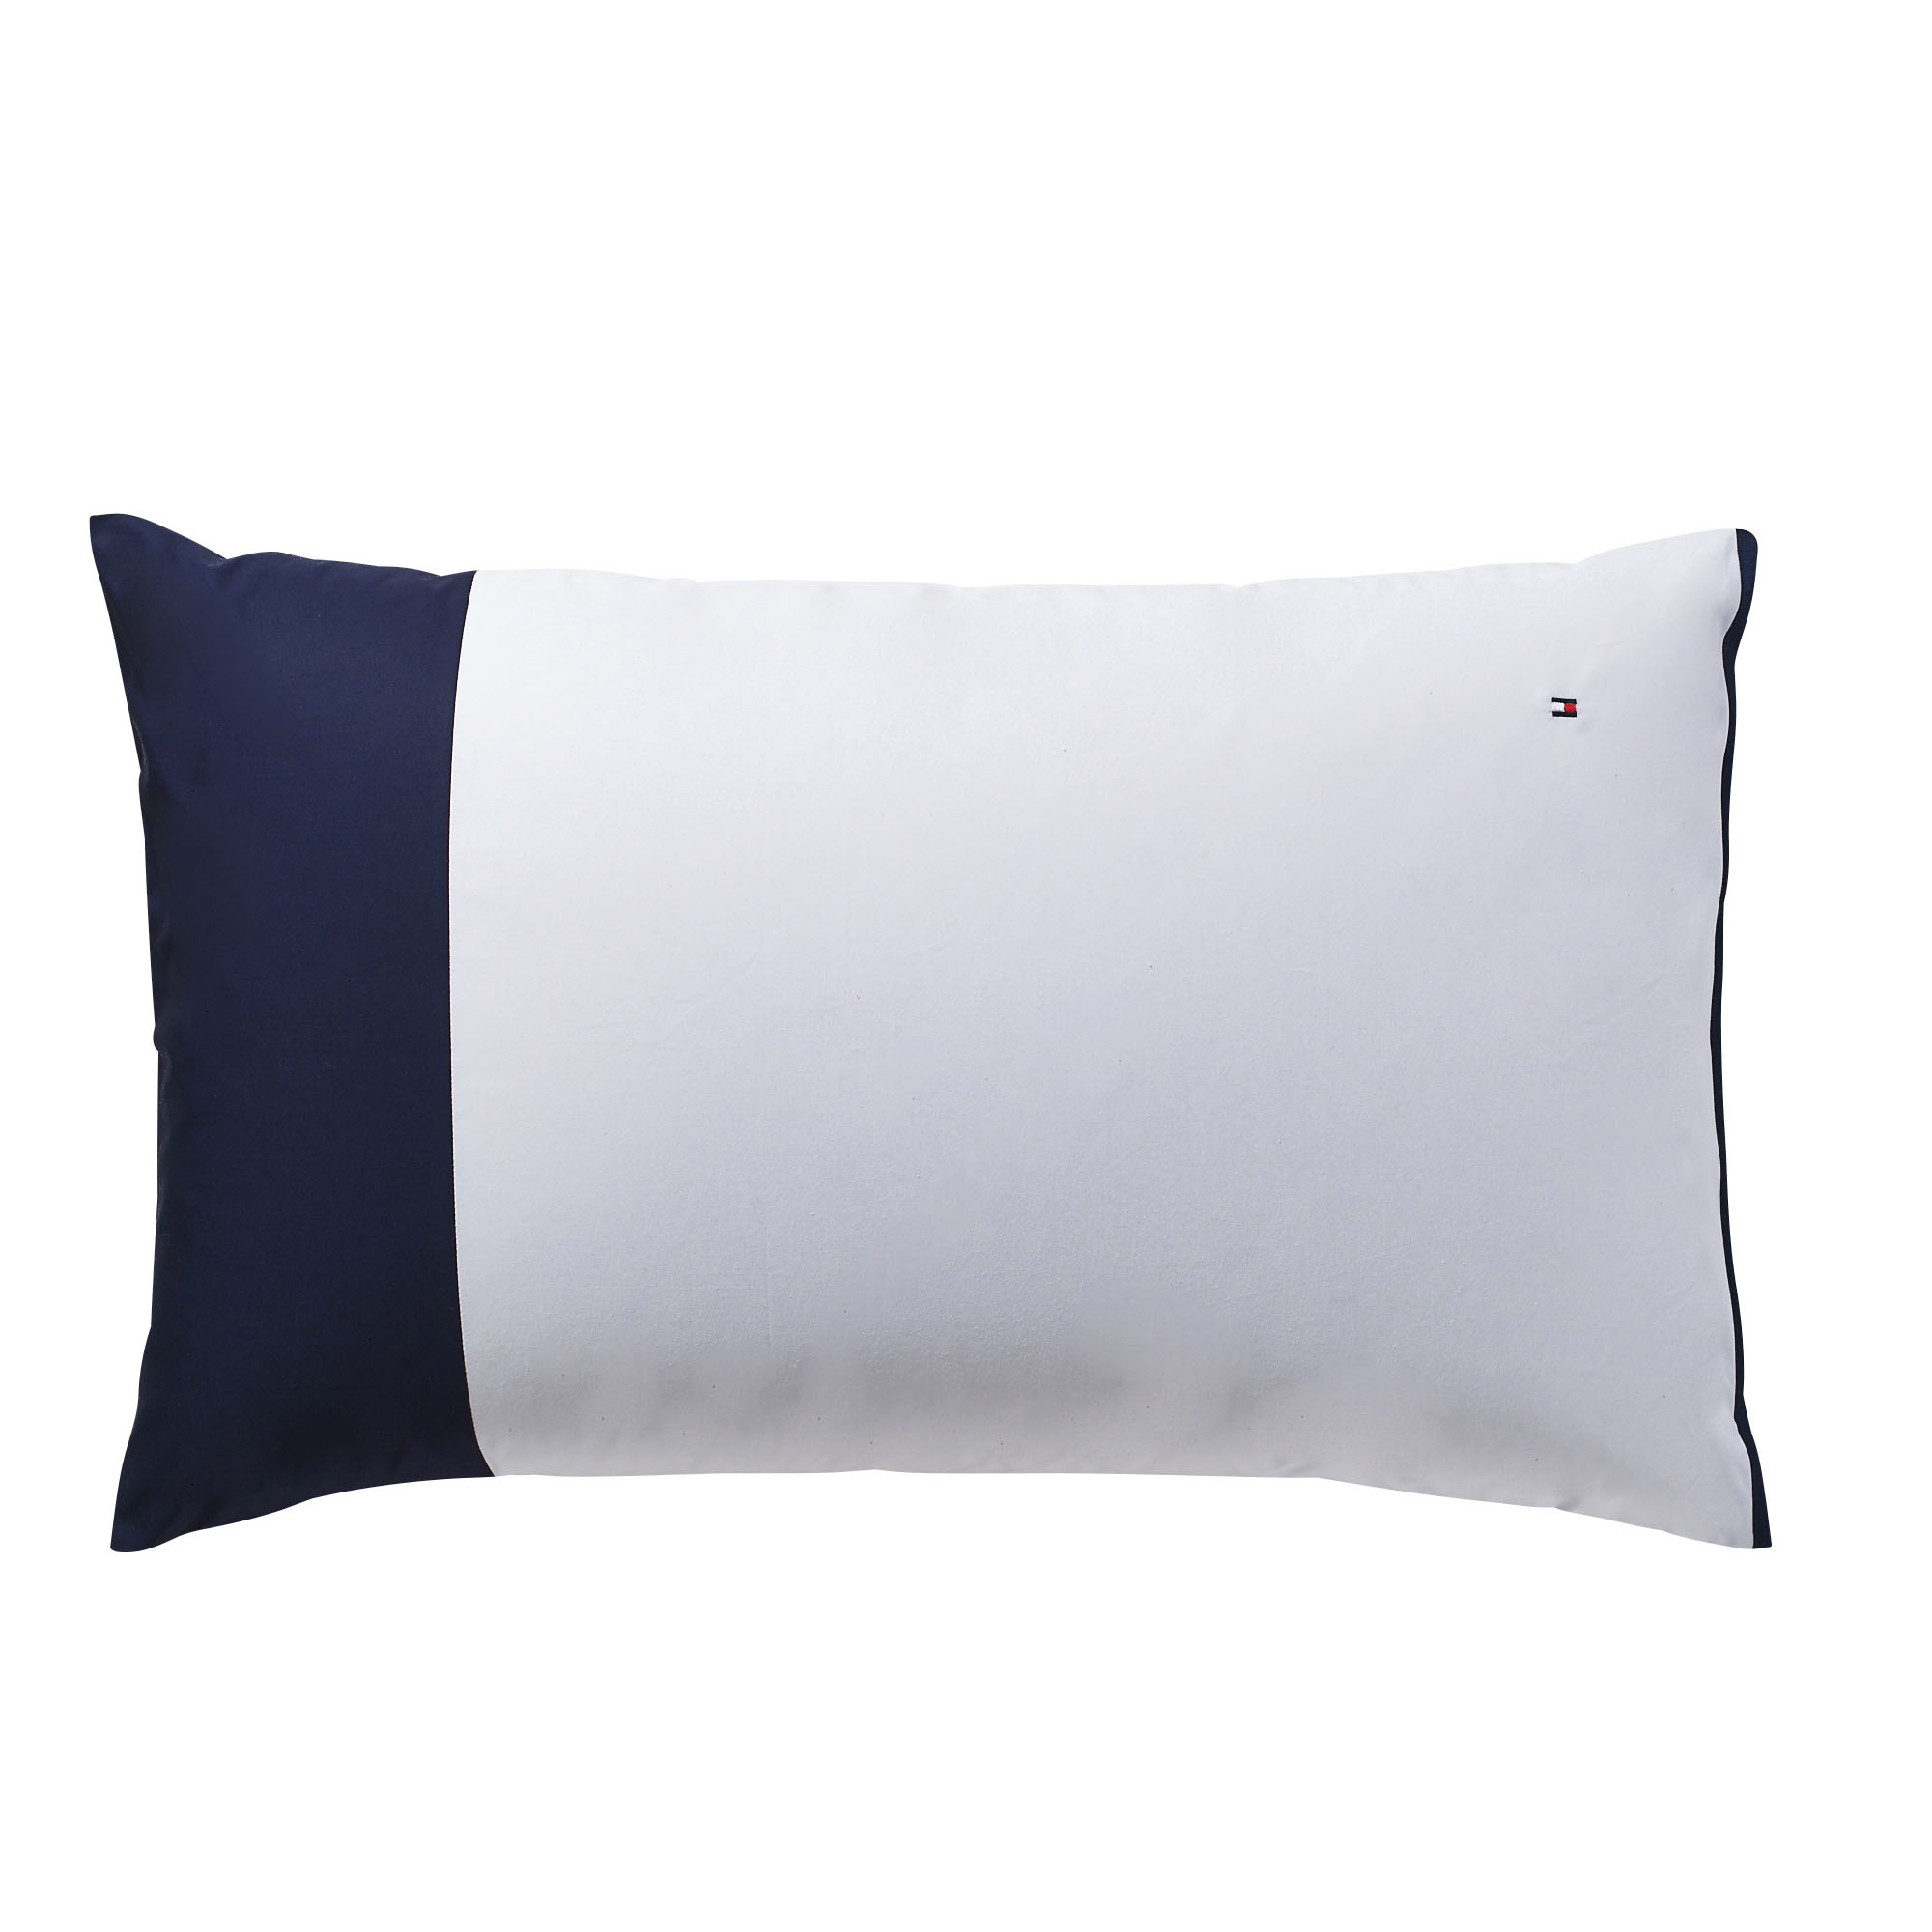 TAILOR TO 50X80 NAVY